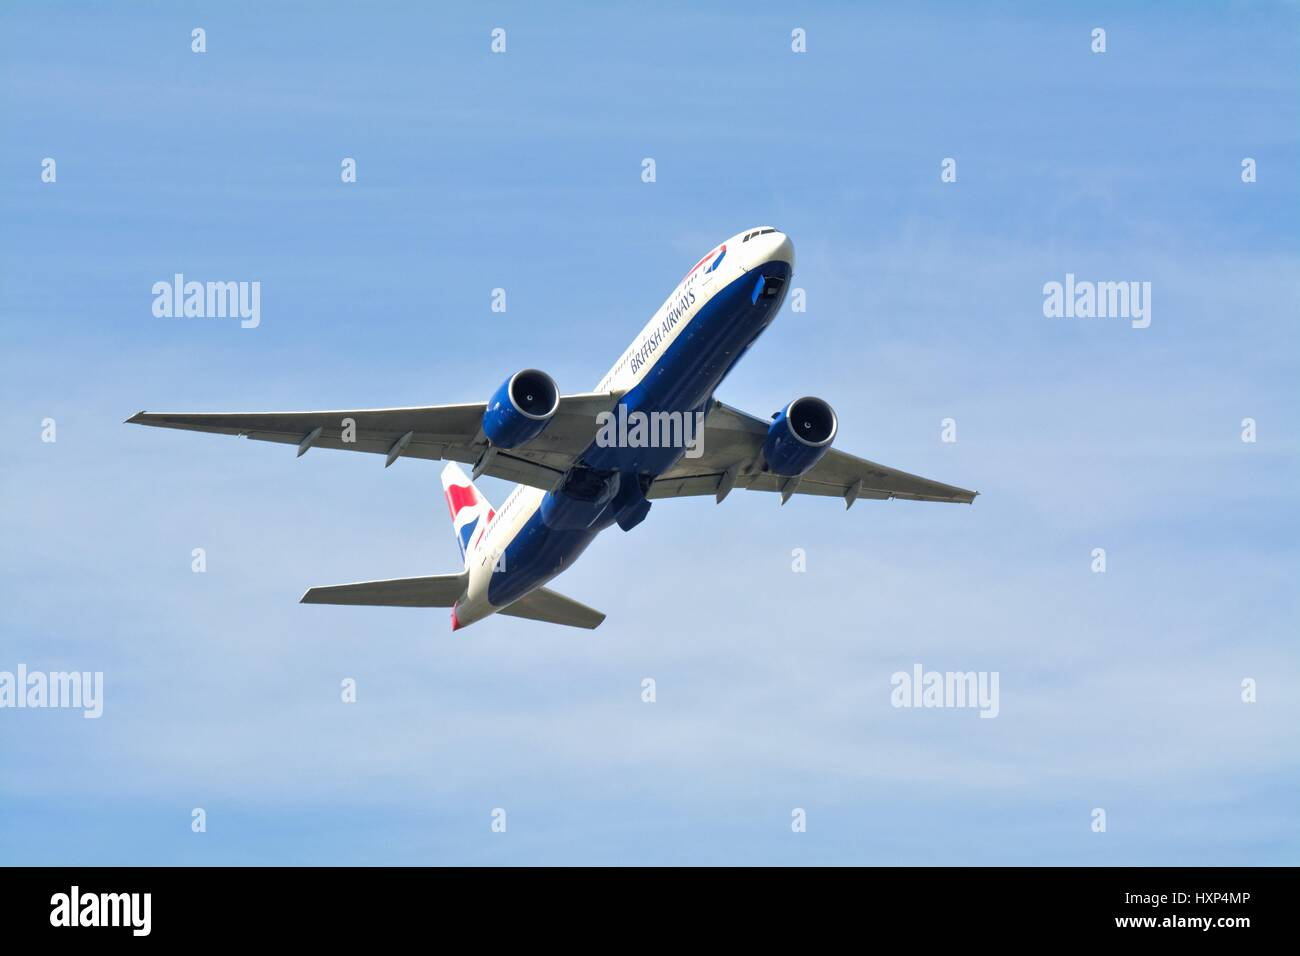 British Airways Boeing -777 avion passagers décollant de l'aéroport d'Heathrow de Londres UK Photo Stock